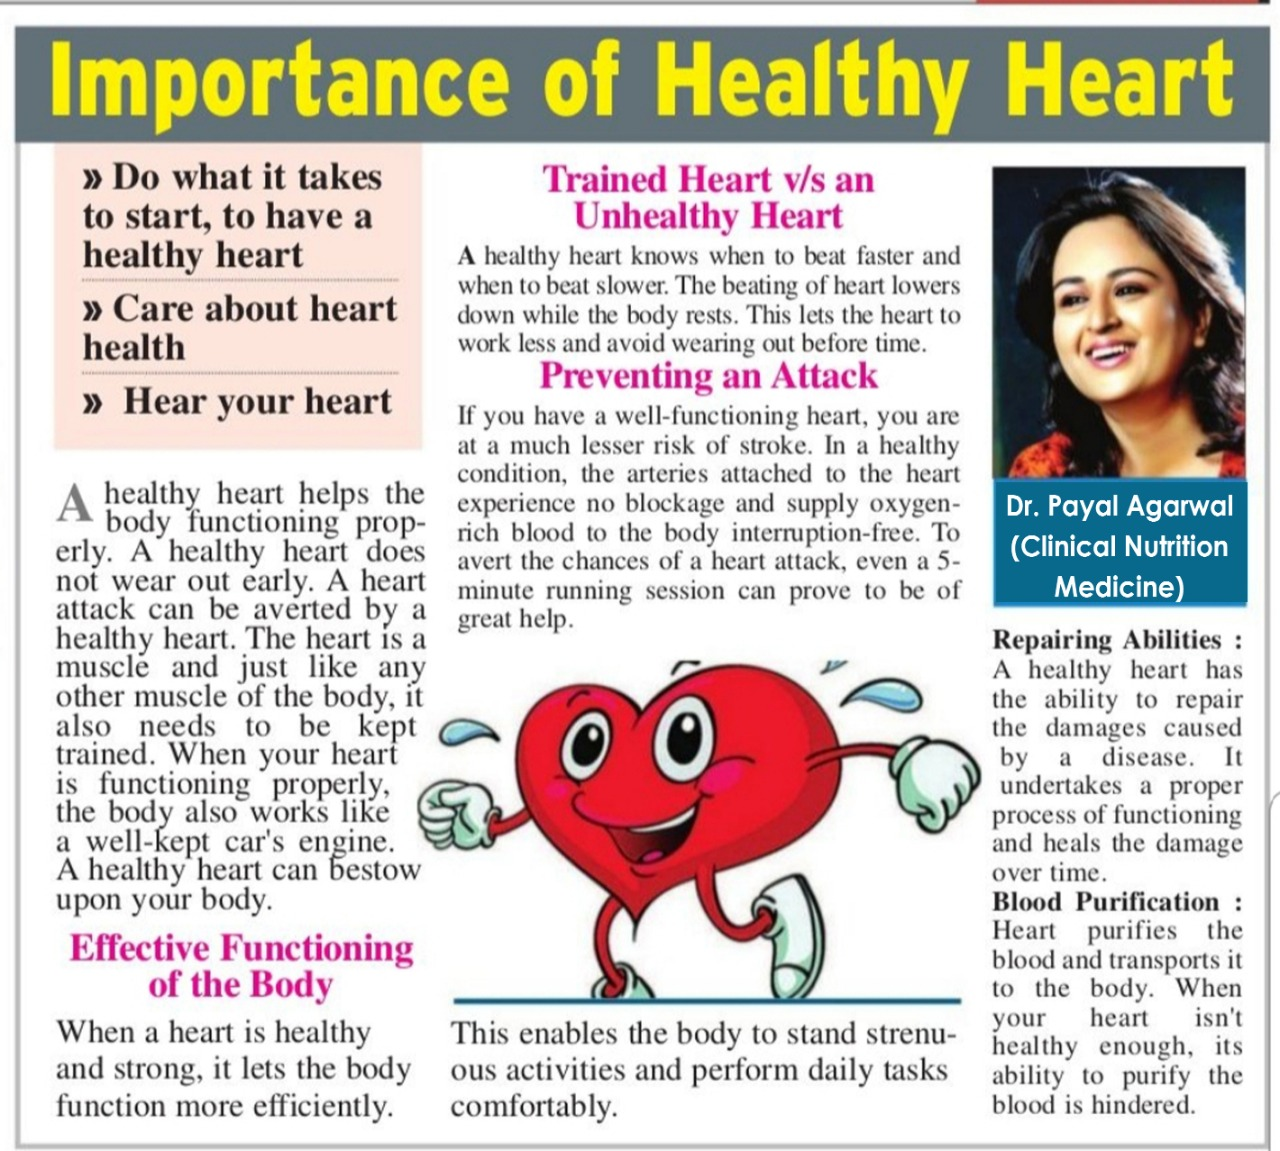 Importance of Healthy Heart